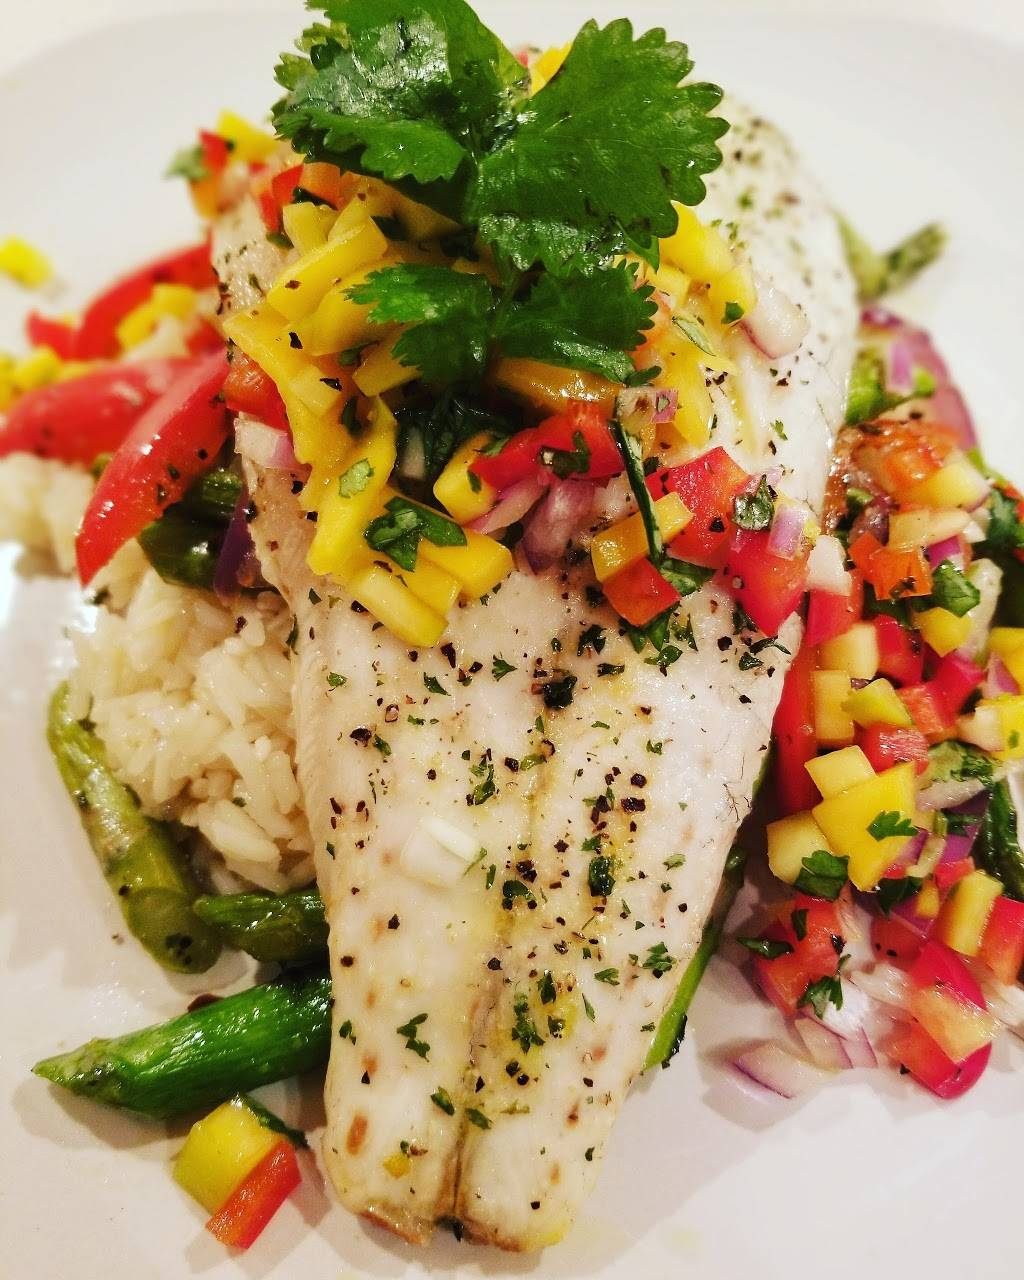 Chef Tia & Co   meal takeaway   4955 W Washington St ste F, Indianapolis, IN 46241, USA   3173001411 OR +1 317-300-1411